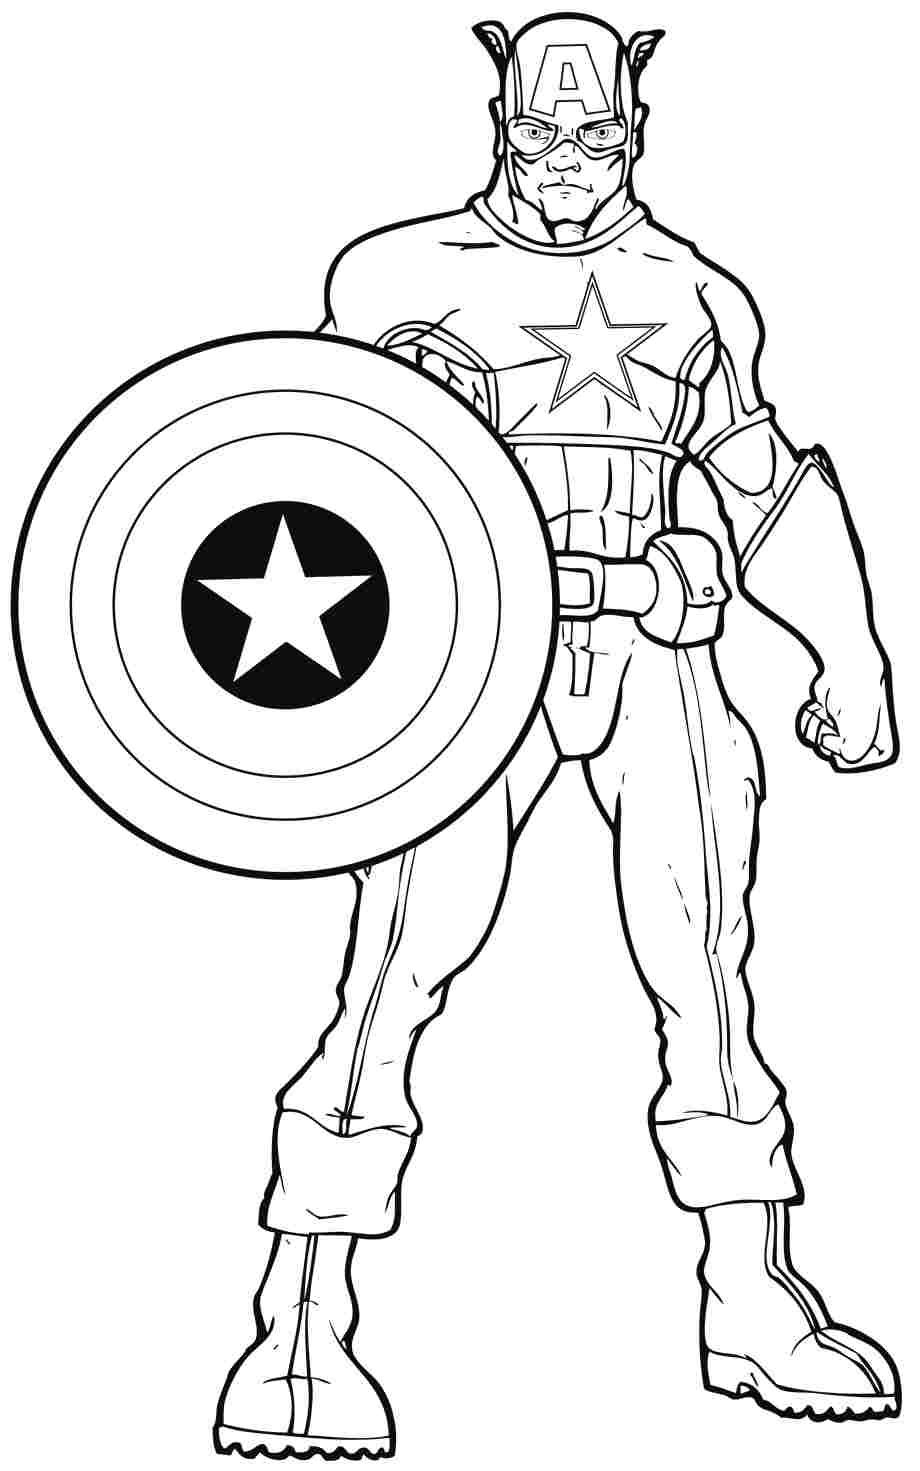 Coloring Pages Flash Superhero Coloring Home   Home Furniture - Free Printable Superhero Coloring Pages